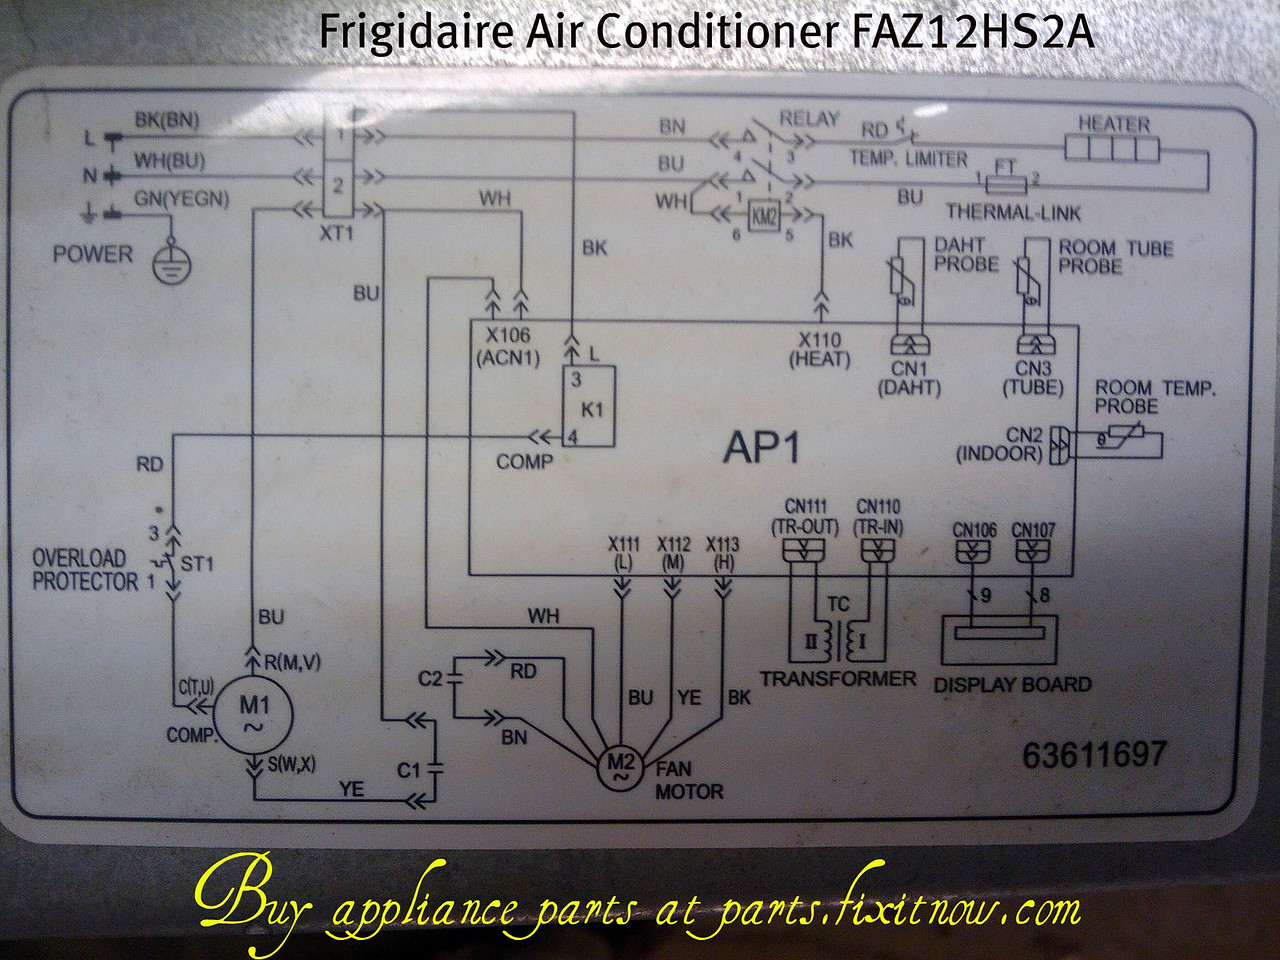 5222984234_5c54e75af1_o X2 wiring diagram for frigidaire air conditioner readingrat net york air conditioner wiring diagram at mifinder.co